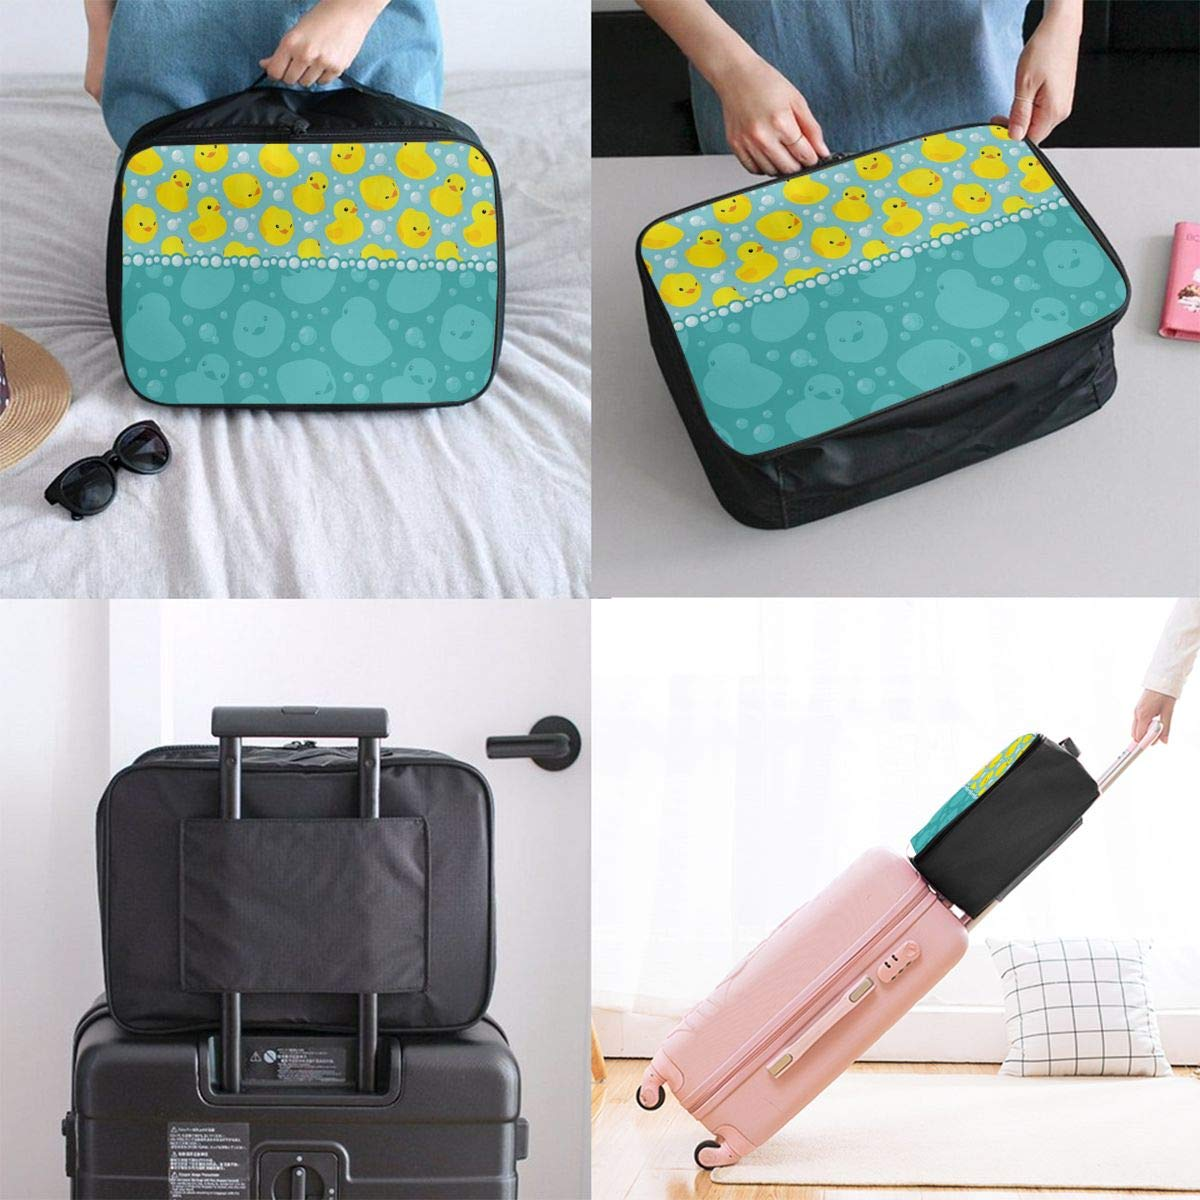 Rubber Duck Cute Aqua Yellow Duckies Travel Lightweight Waterproof Foldable Storage Portable Luggage Duffle Tote Bag Large Capacity In Trolley Handle Bags 6x11x15 Inch